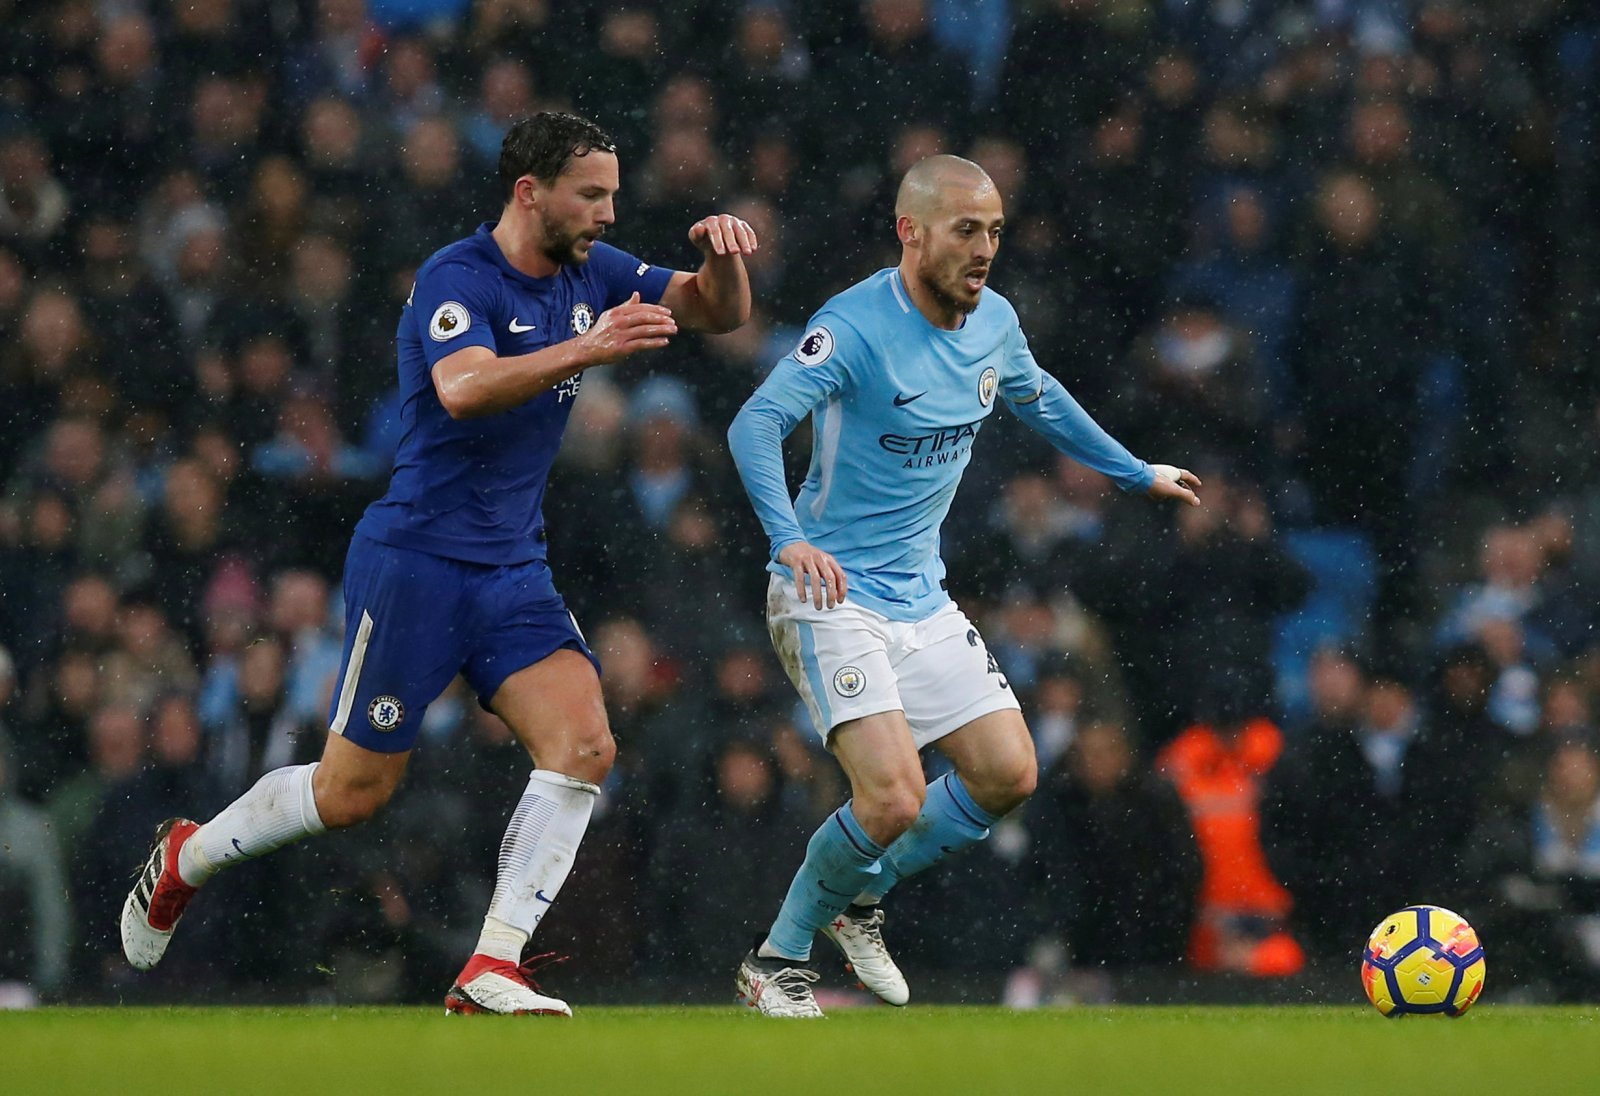 Danny Drinkwater could be Crystal Palace's perfect replacement for Yohan Cabaye